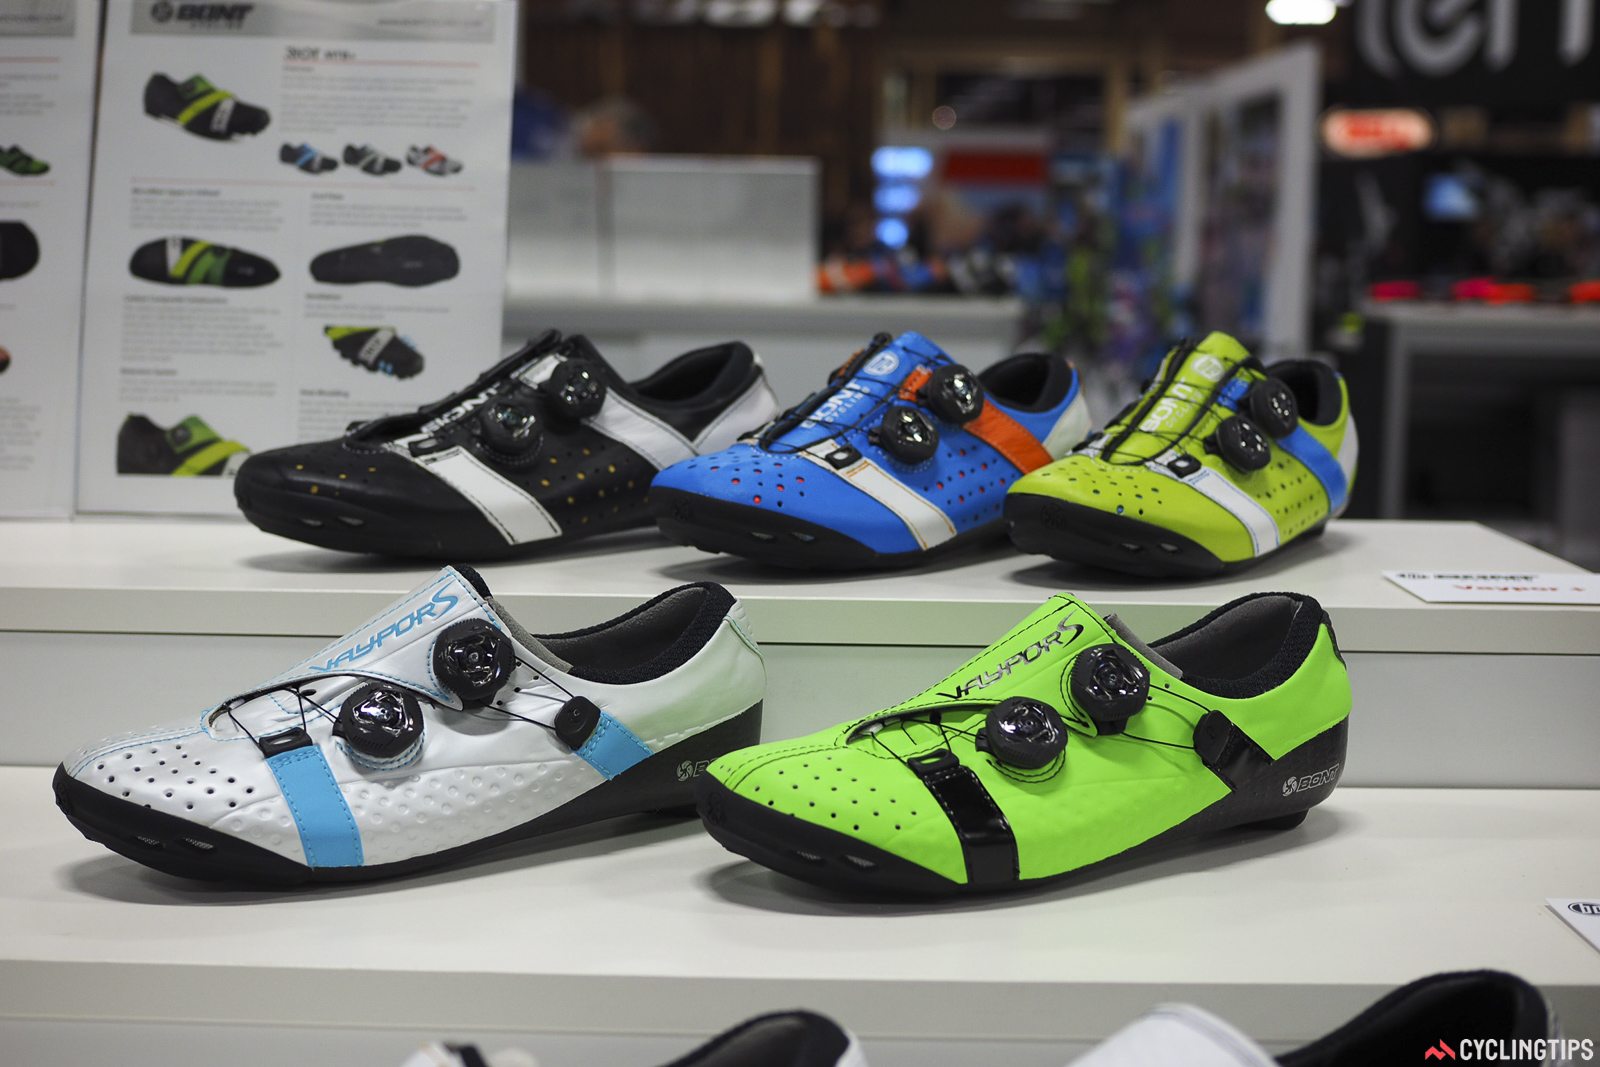 Bont certainly isn't afraid of adding some color to its footwear range.